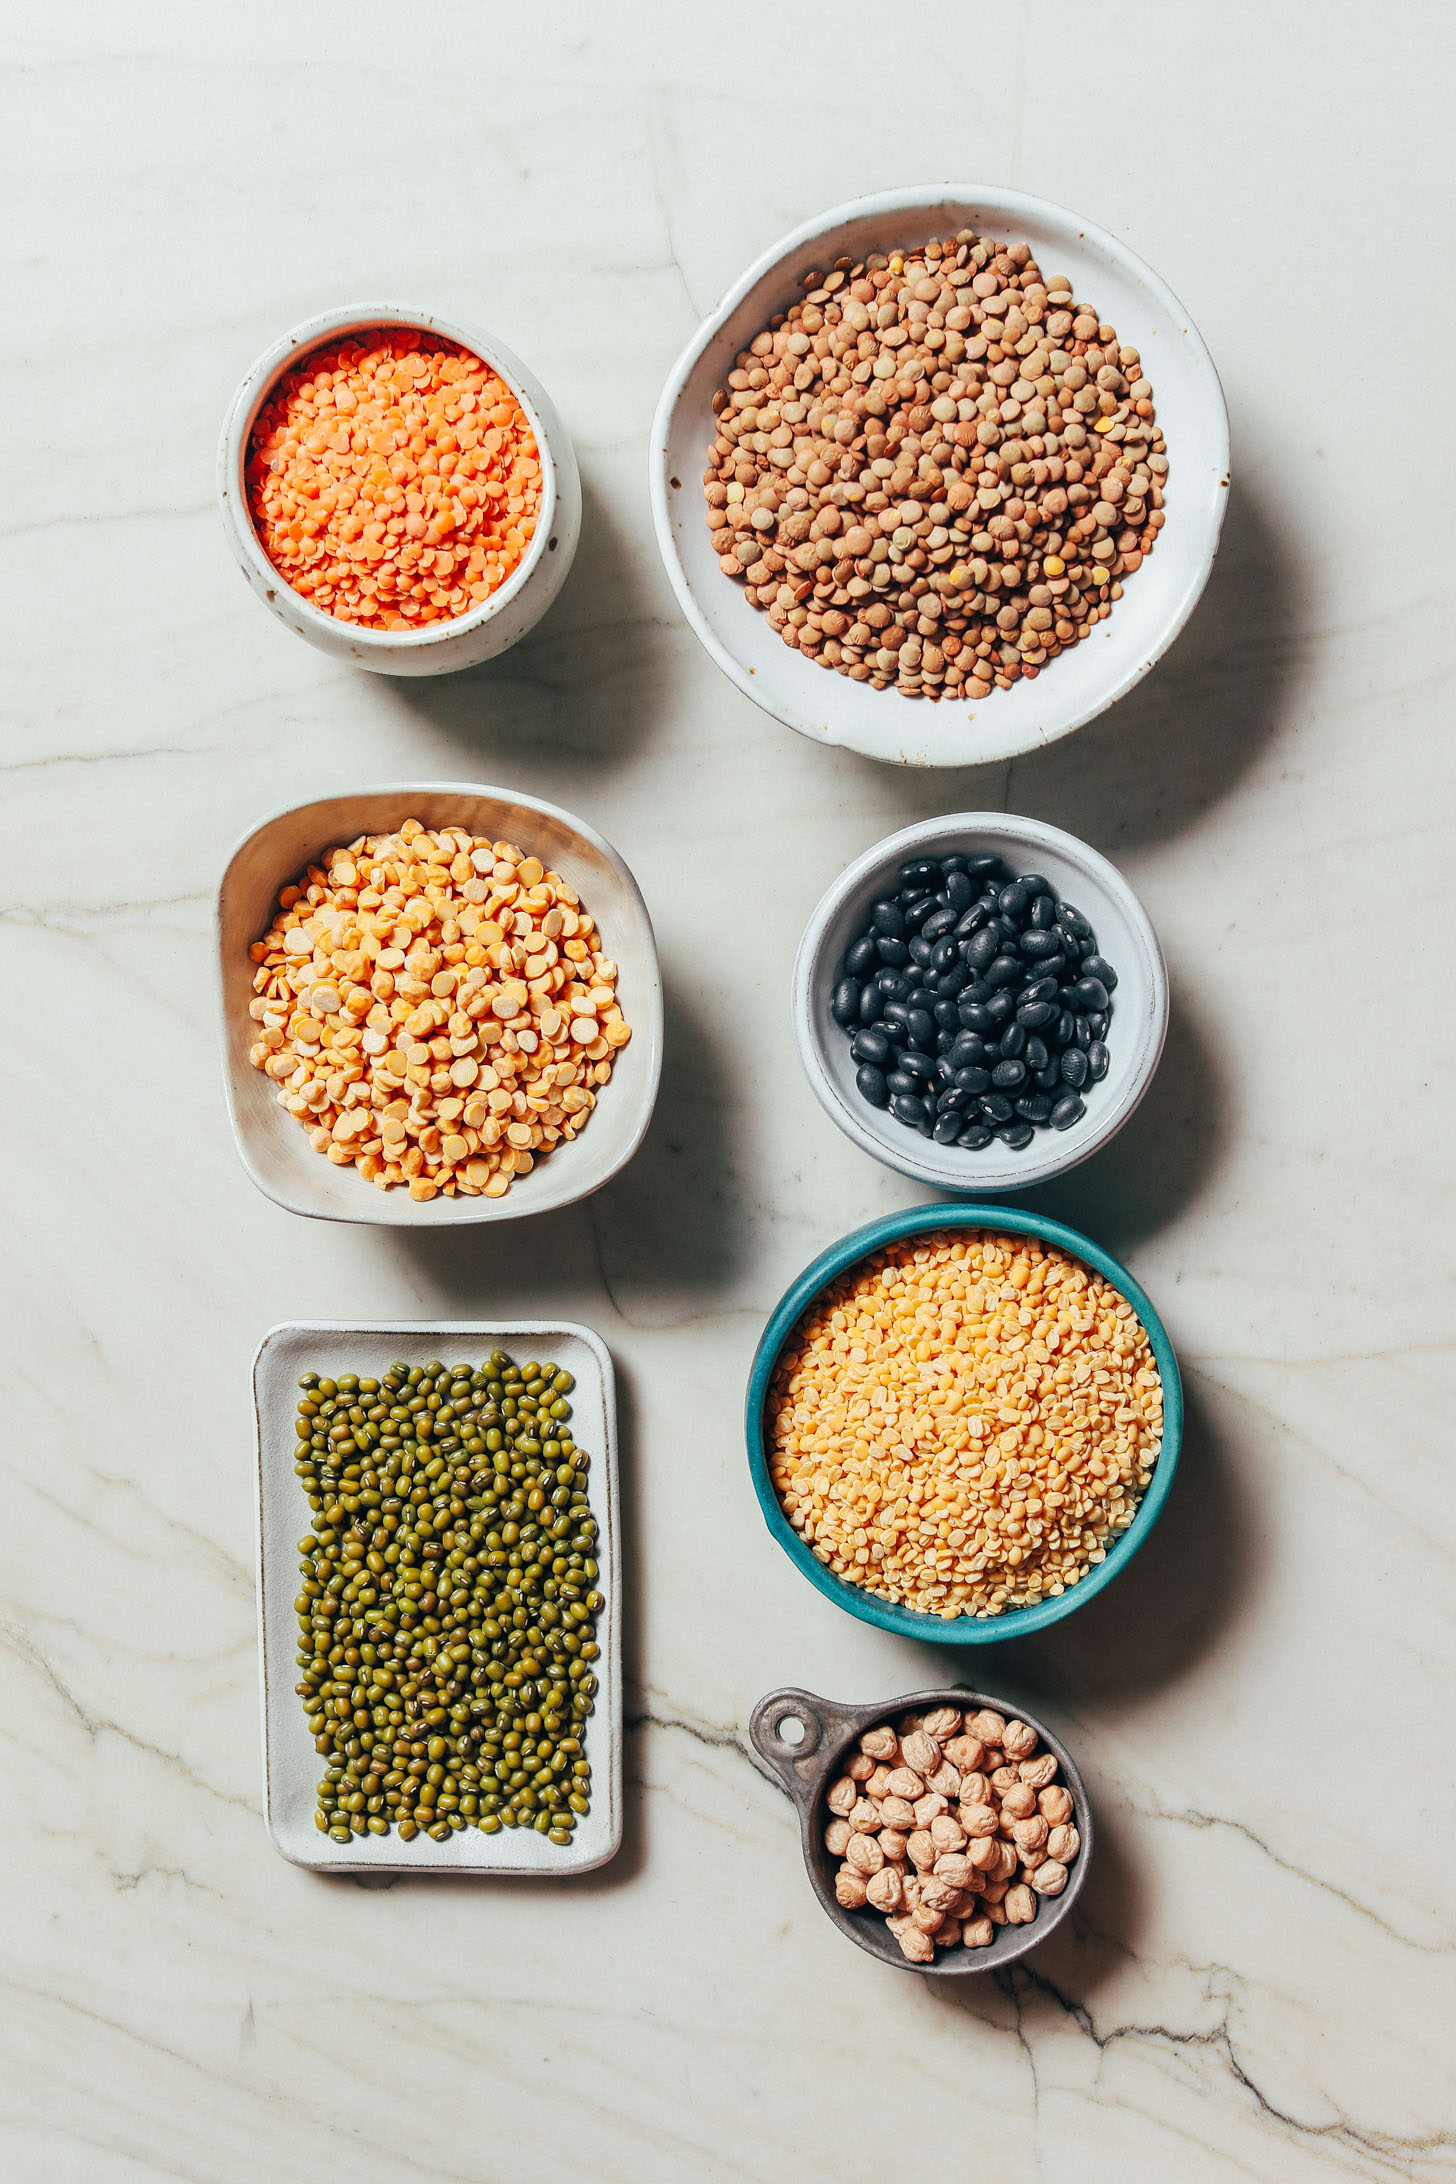 Assortment of legumes and pulses included in our Guide on How to Stock Your Pantry